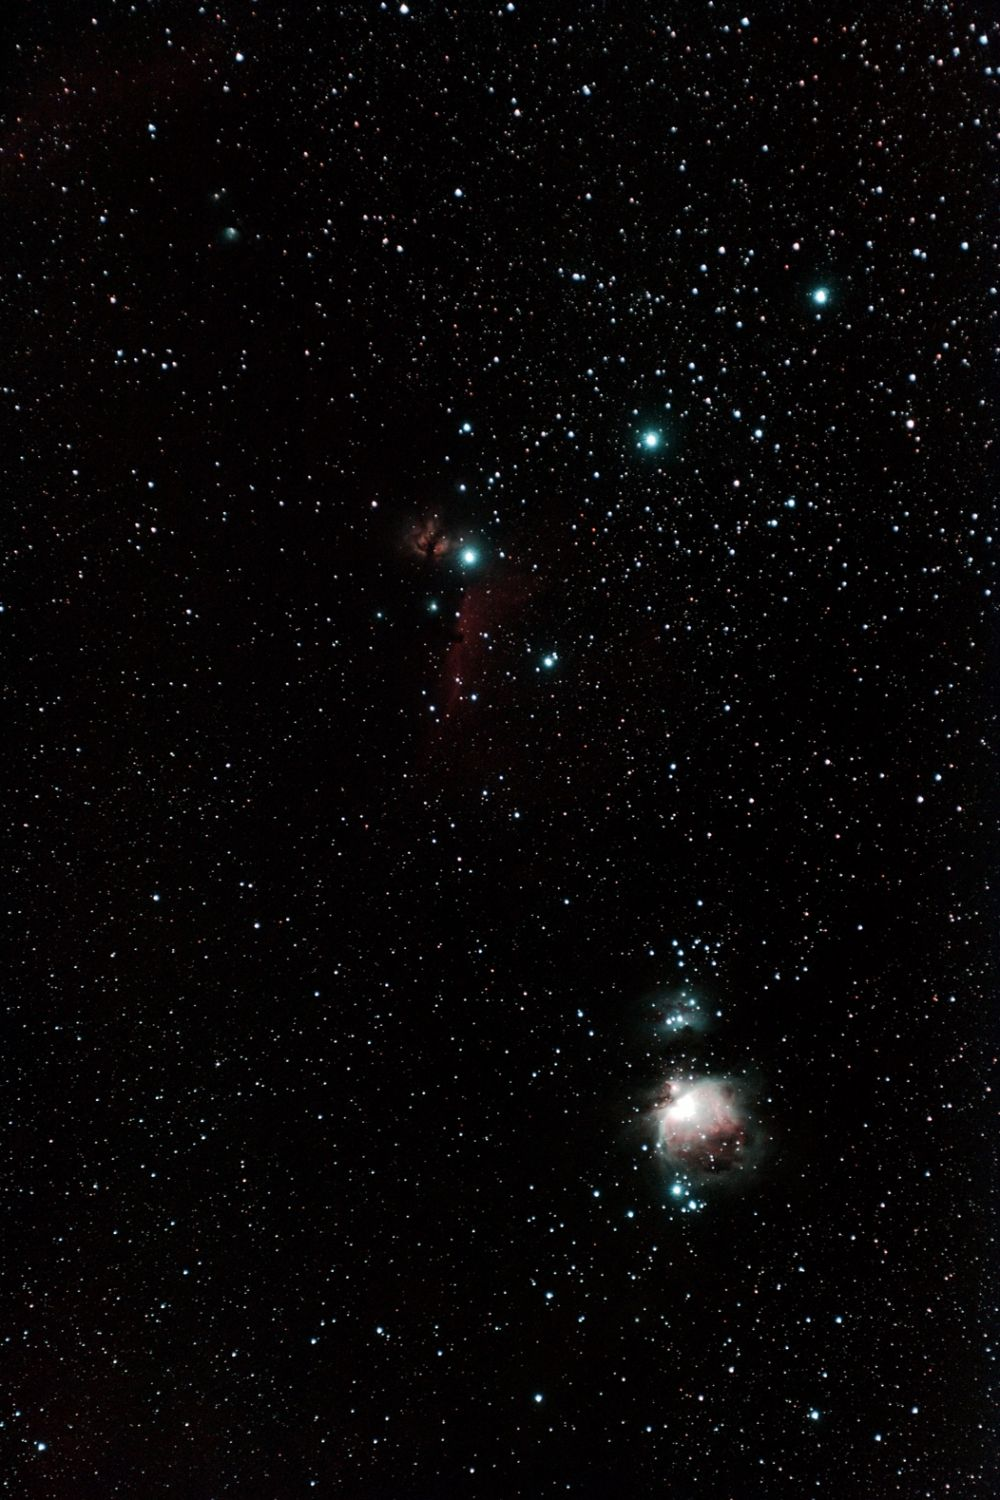 Nebulas in Orion - M42, M43, Horse Nebula, M78.